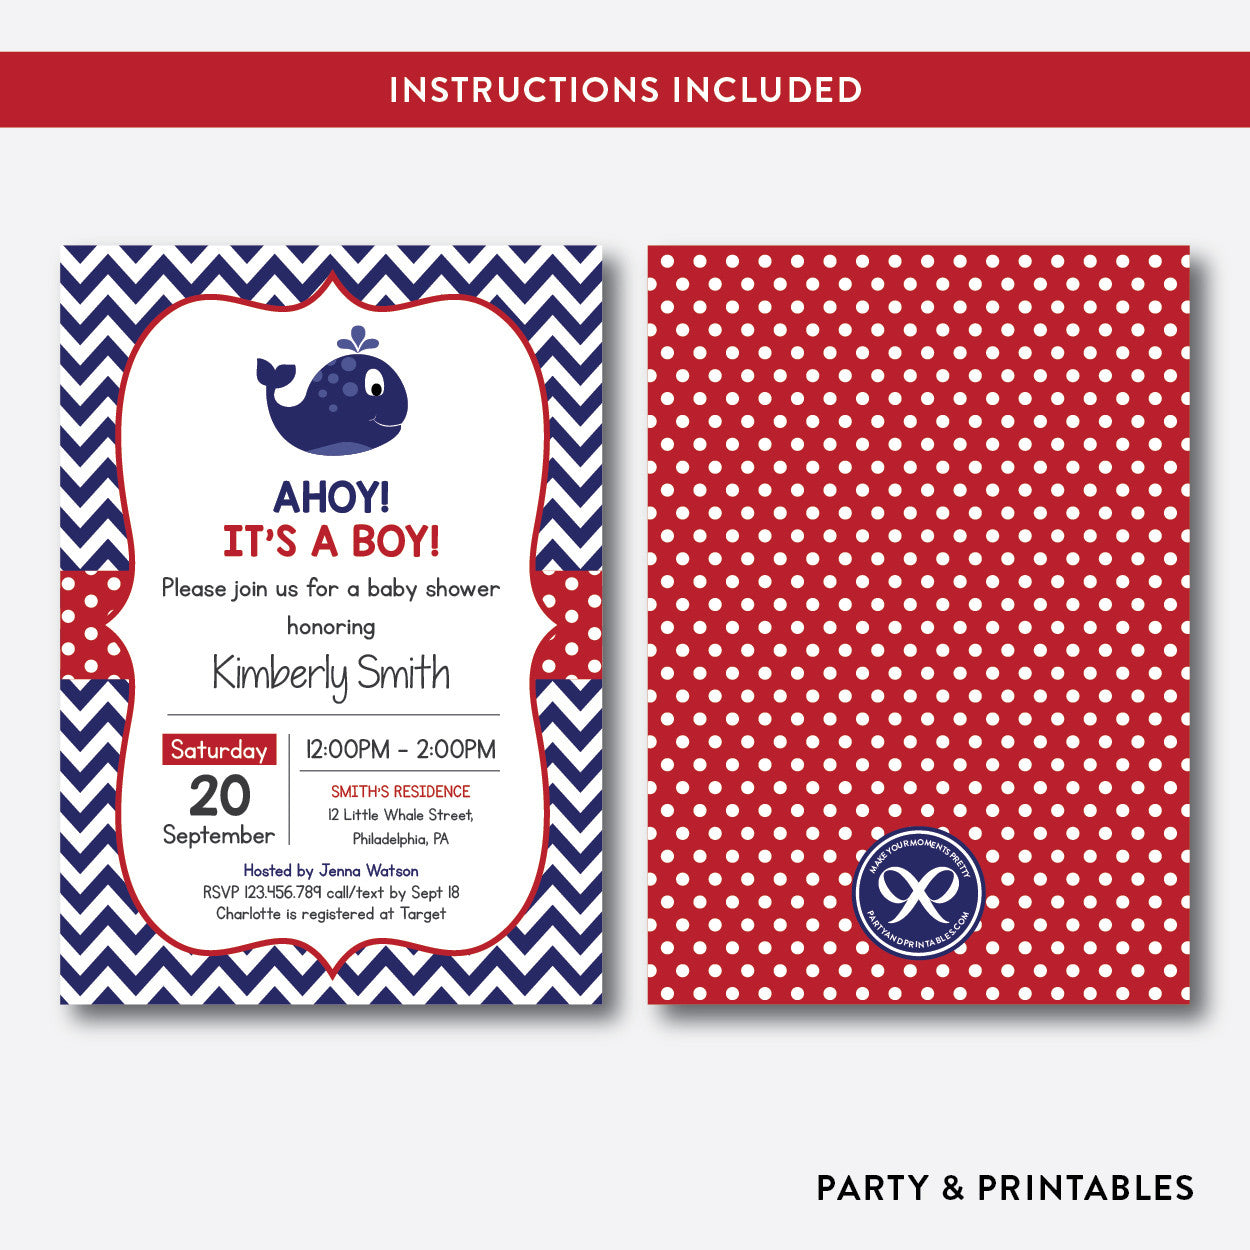 Whale Baby Shower Invitation / Editable / Instant Download (SBS.76), invitation - Party and Printables